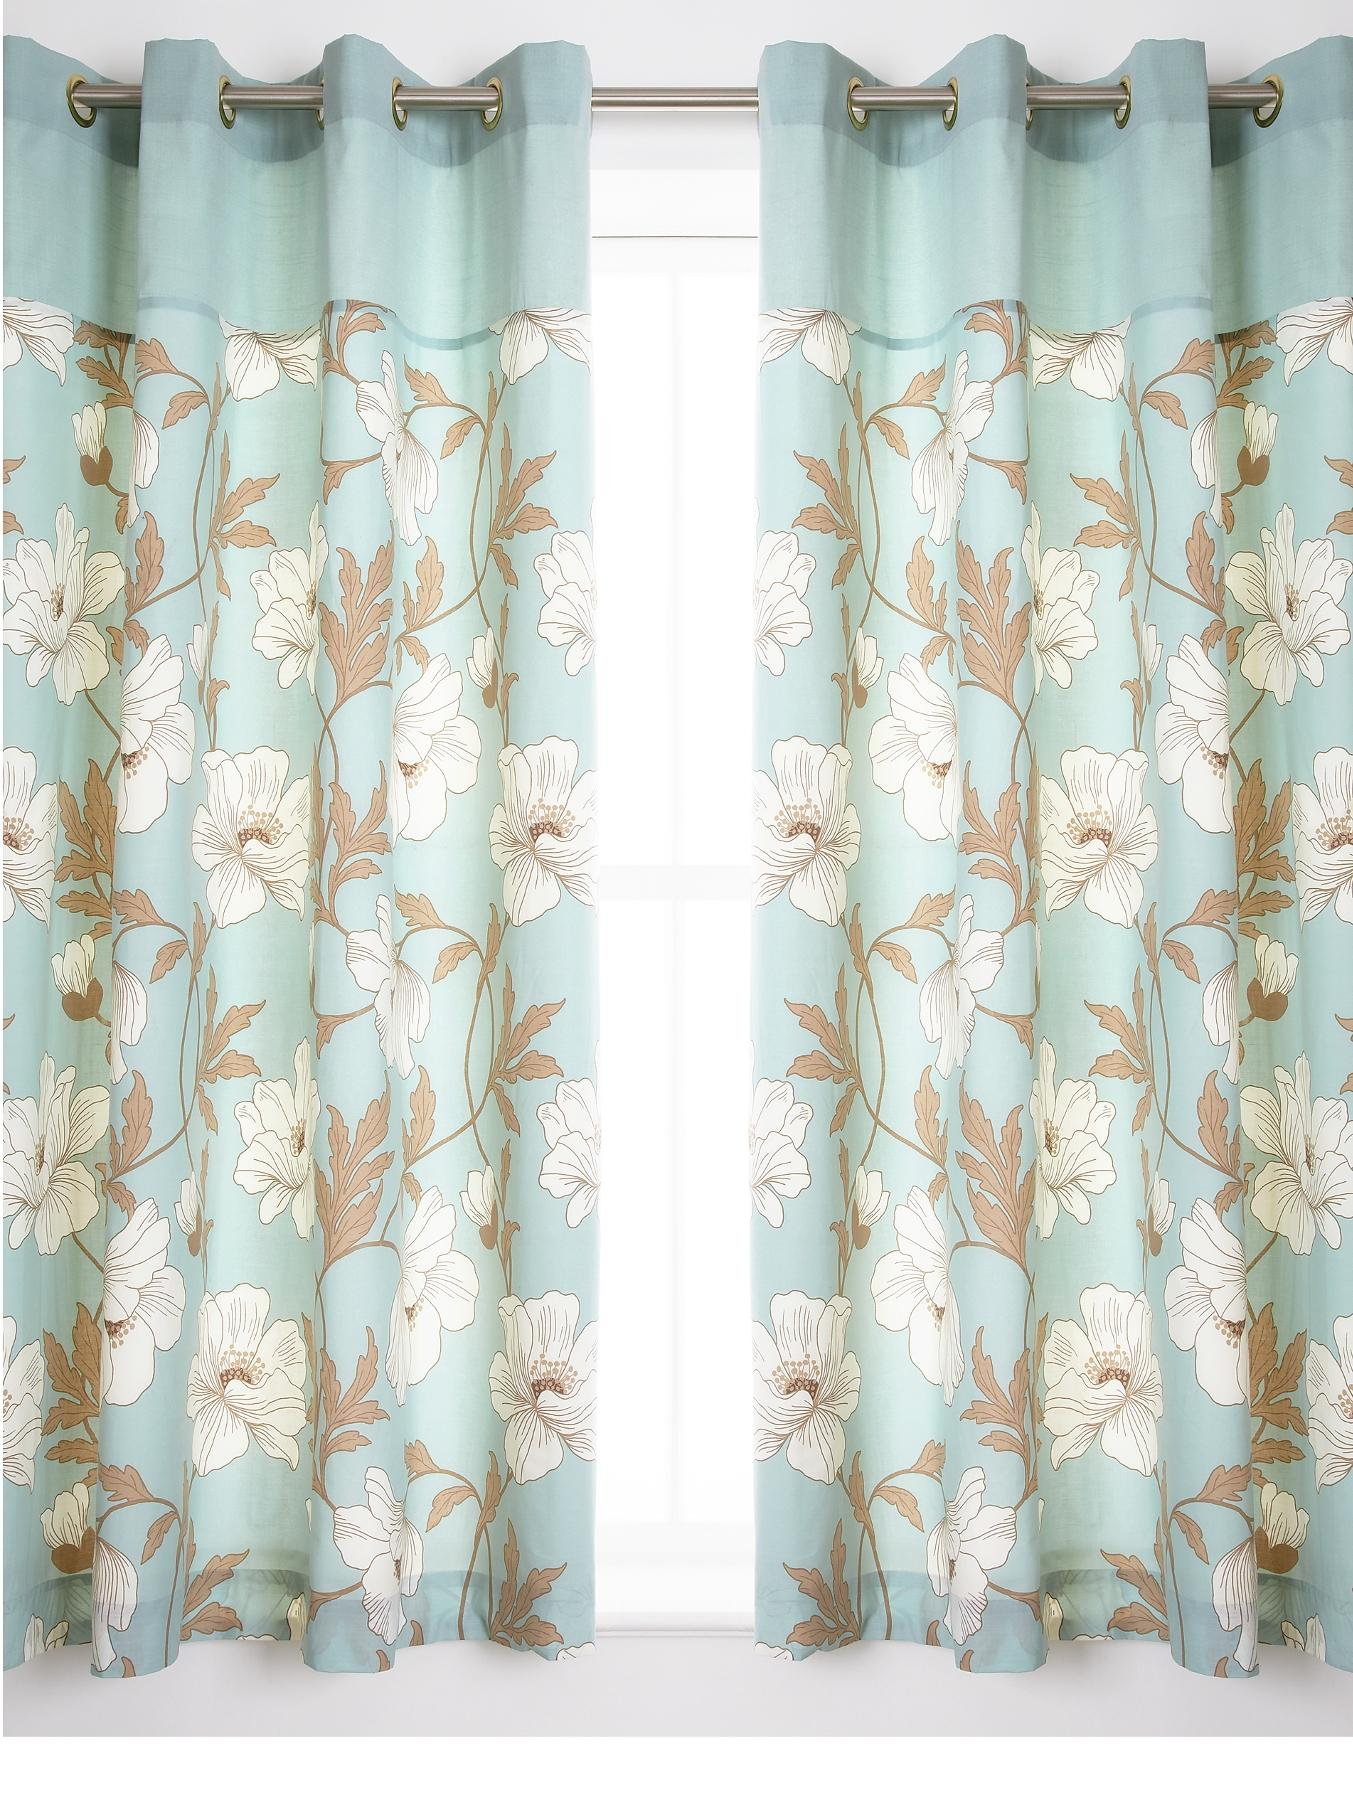 Magnolia Eyelet Curtains